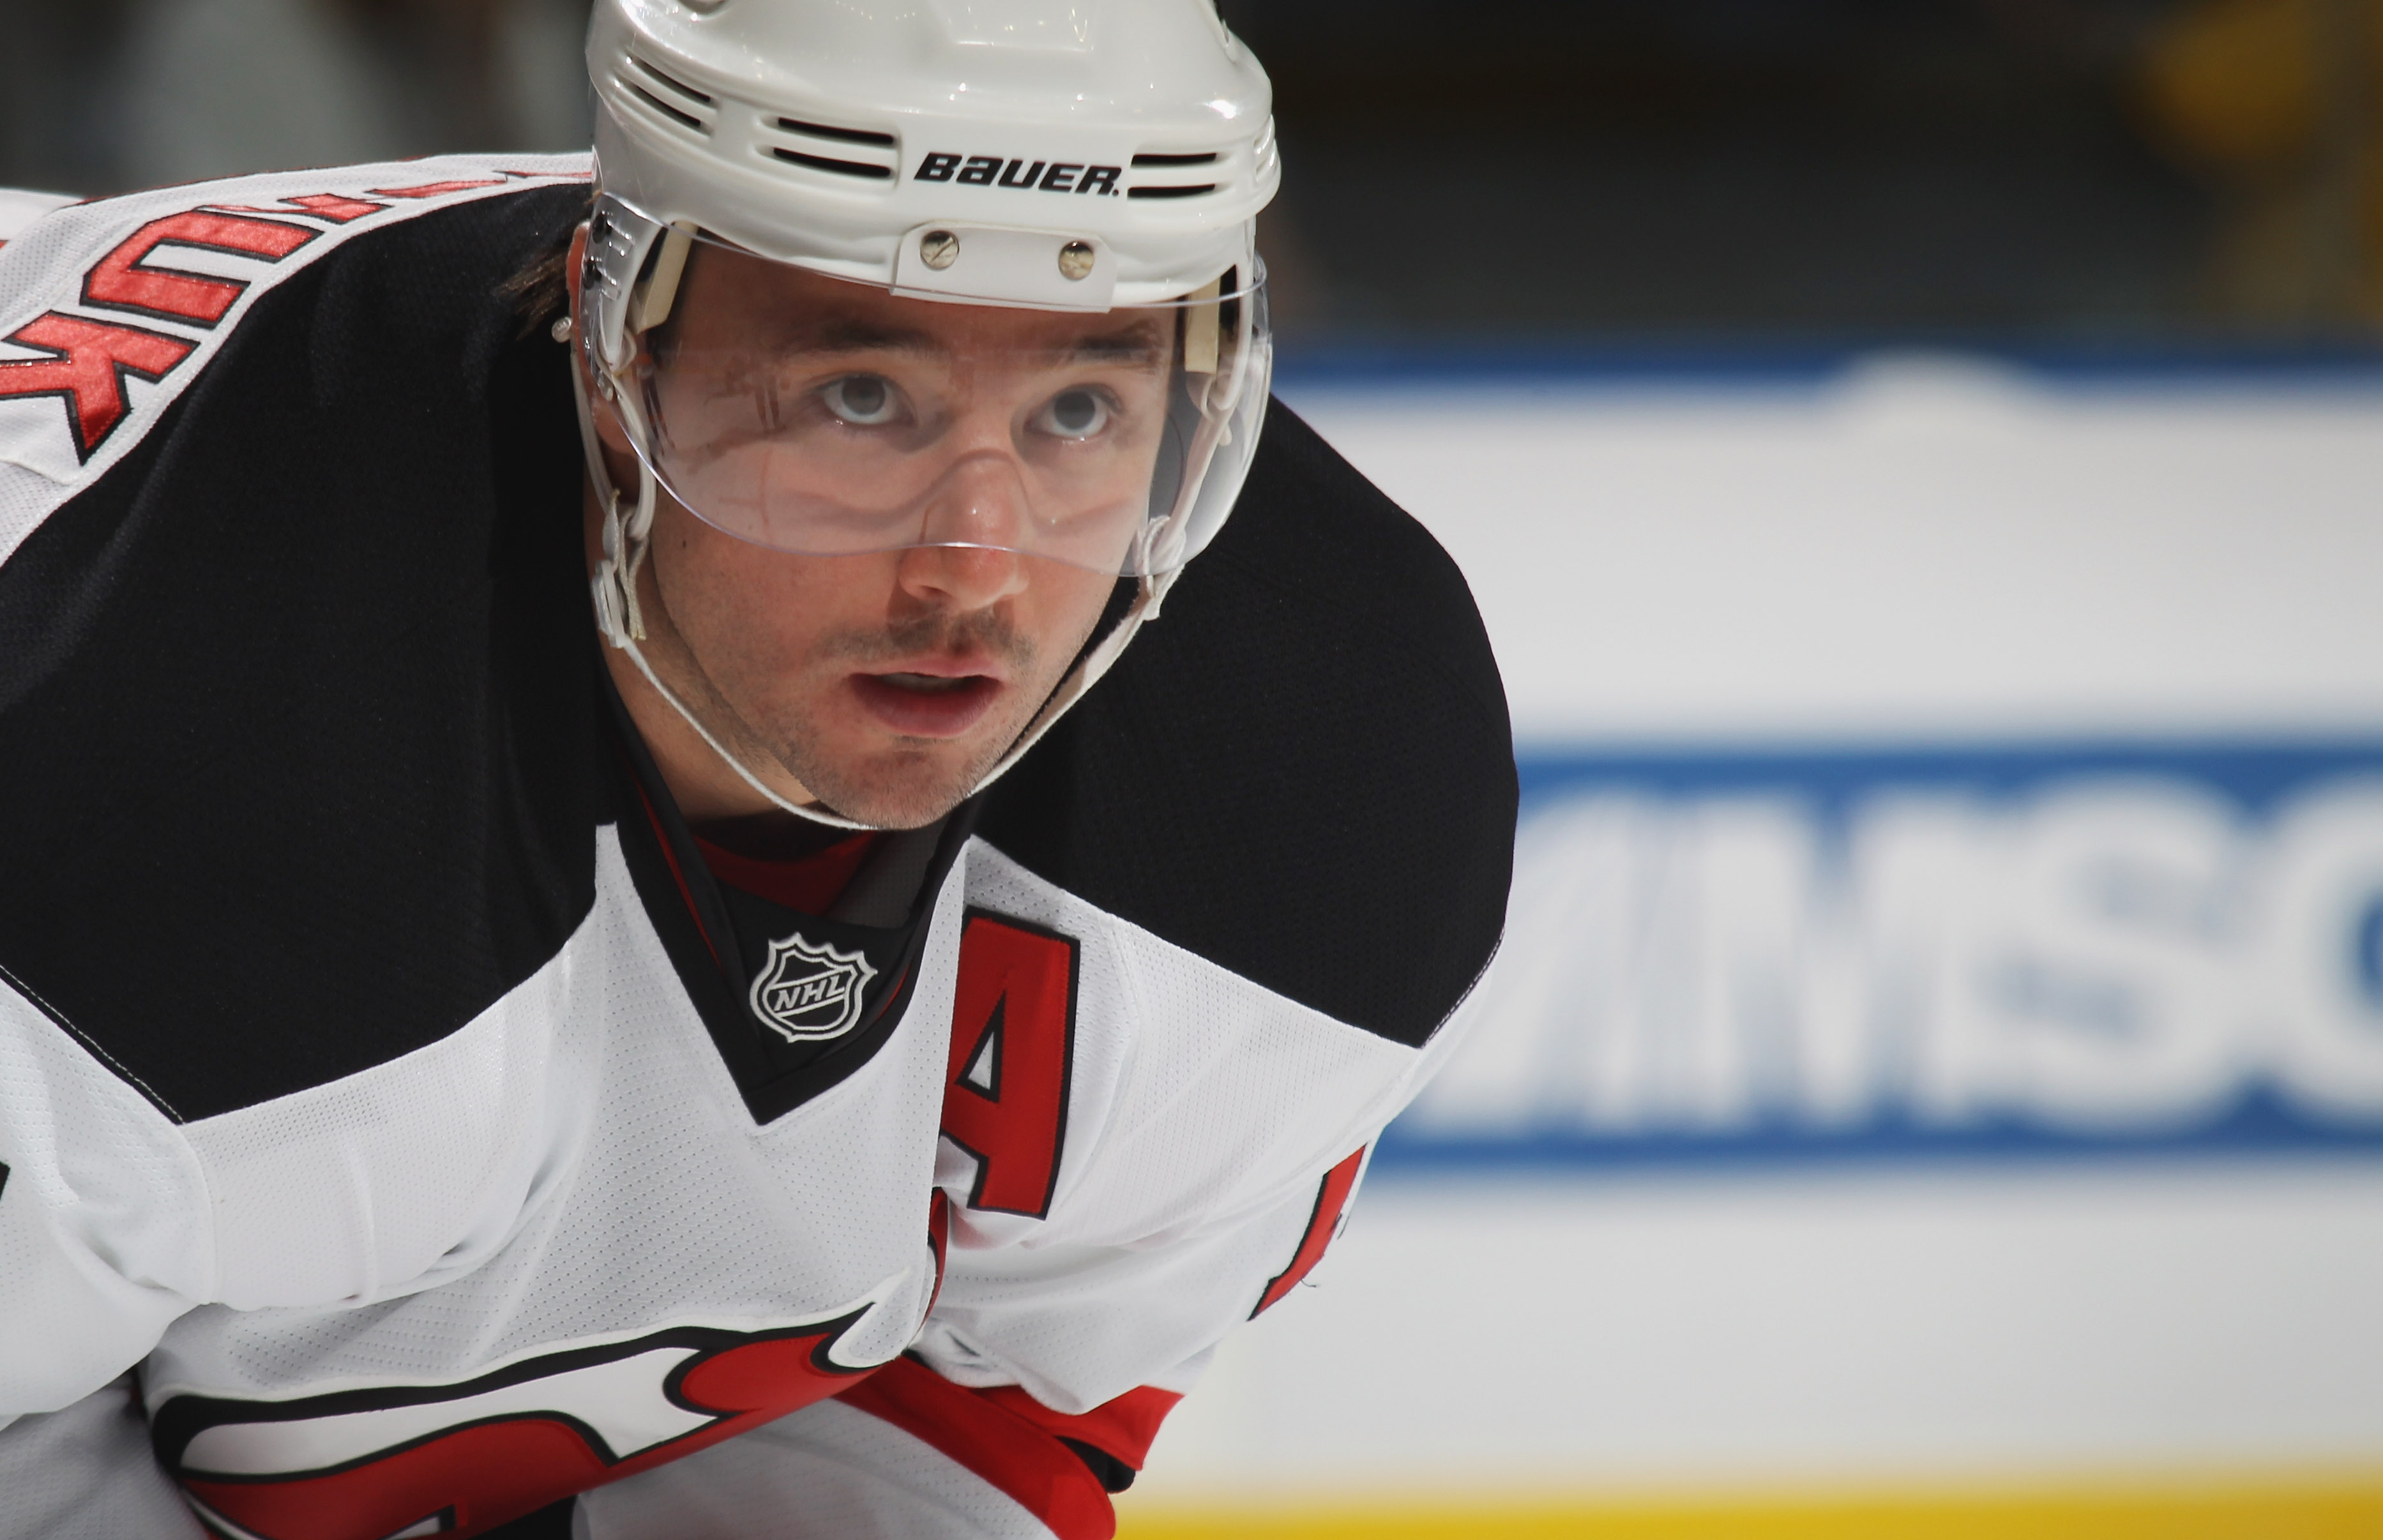 UNIONDALE, NY - OCTOBER 02:  Ilya Kovalchuk #17 of the New Jersey Devils skates against the New York Islanders at the Nassau Veterans Memorial Coliseum on October 2, 2010 in Uniondale, New York. The Islanders defeated the Devils 2-1.  (Photo by Bruce Benn